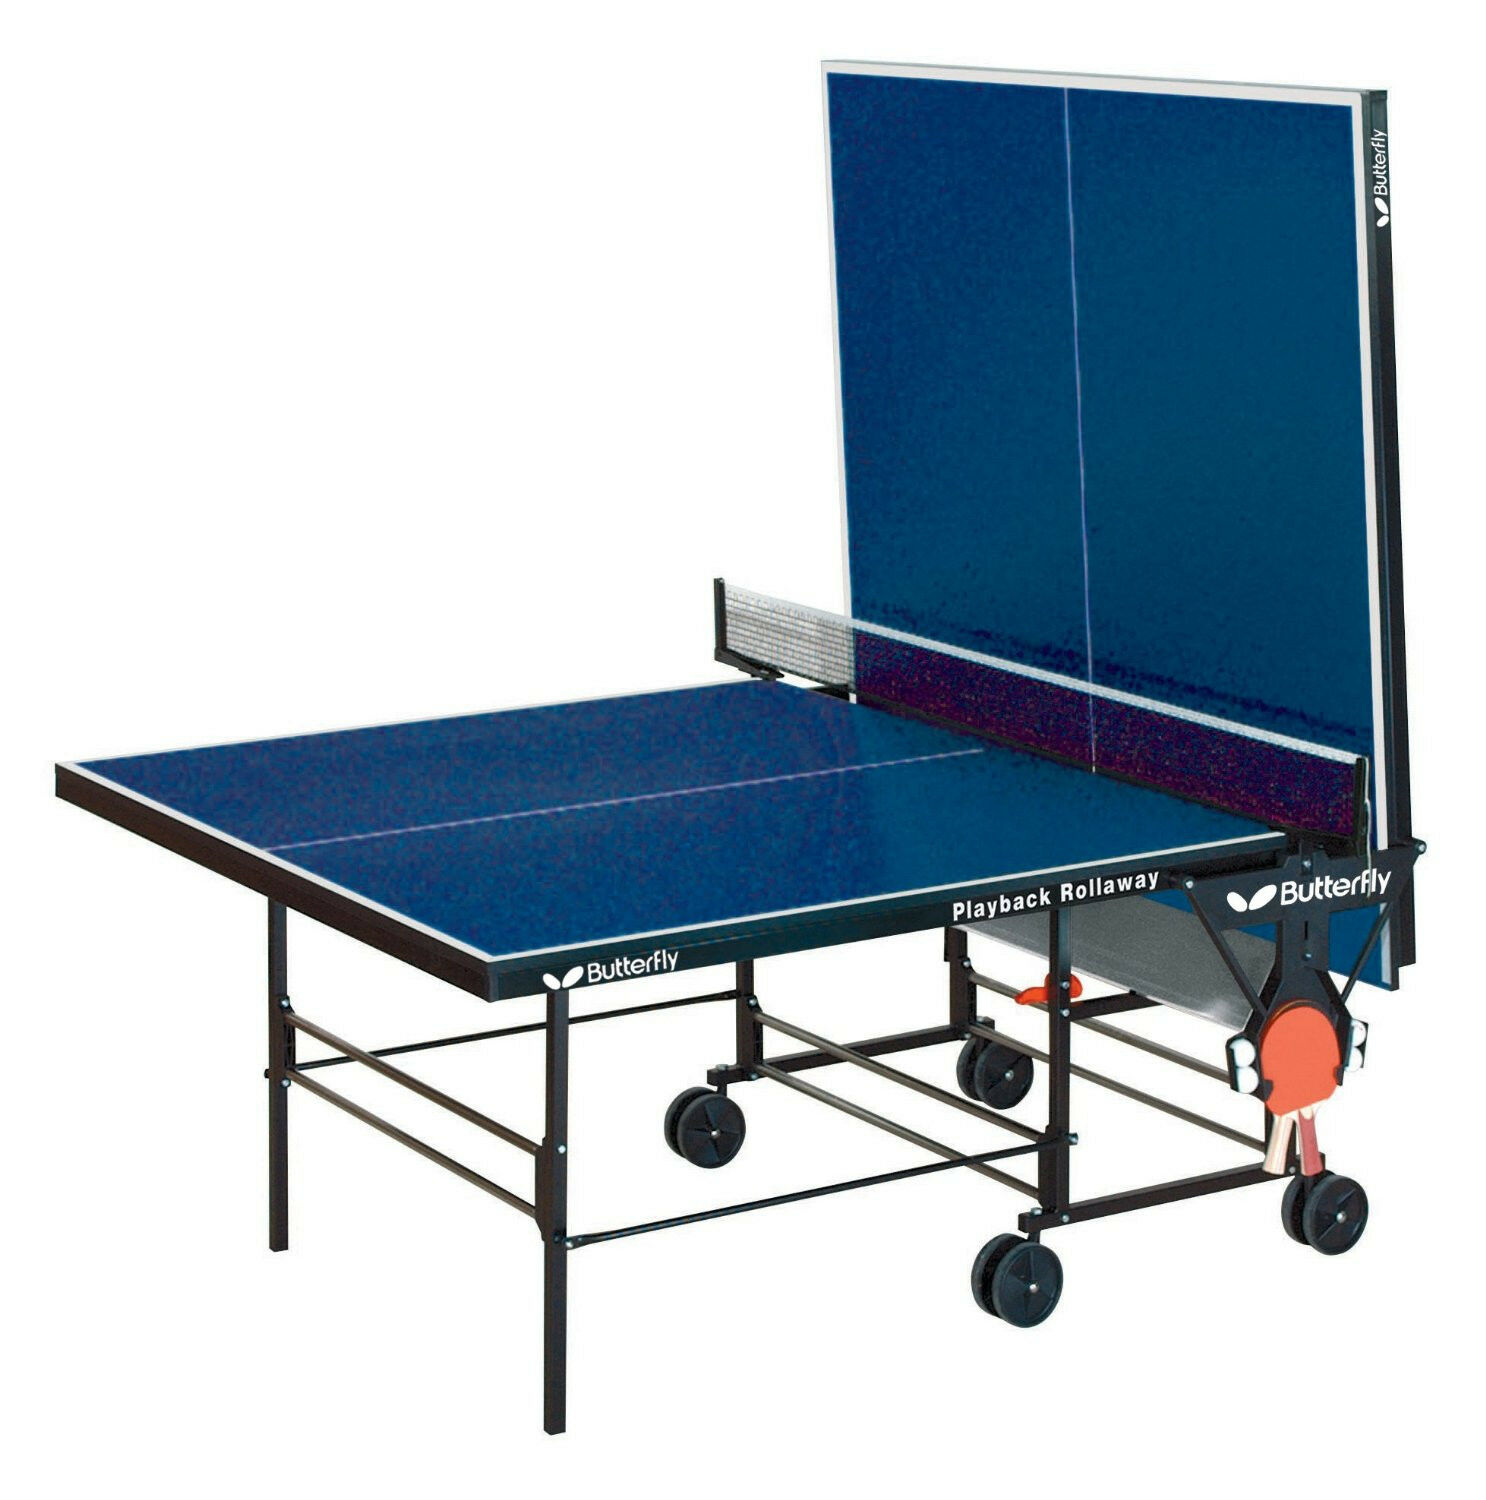 Outdoor Ping Pong Tables: Butterfly Rollaway